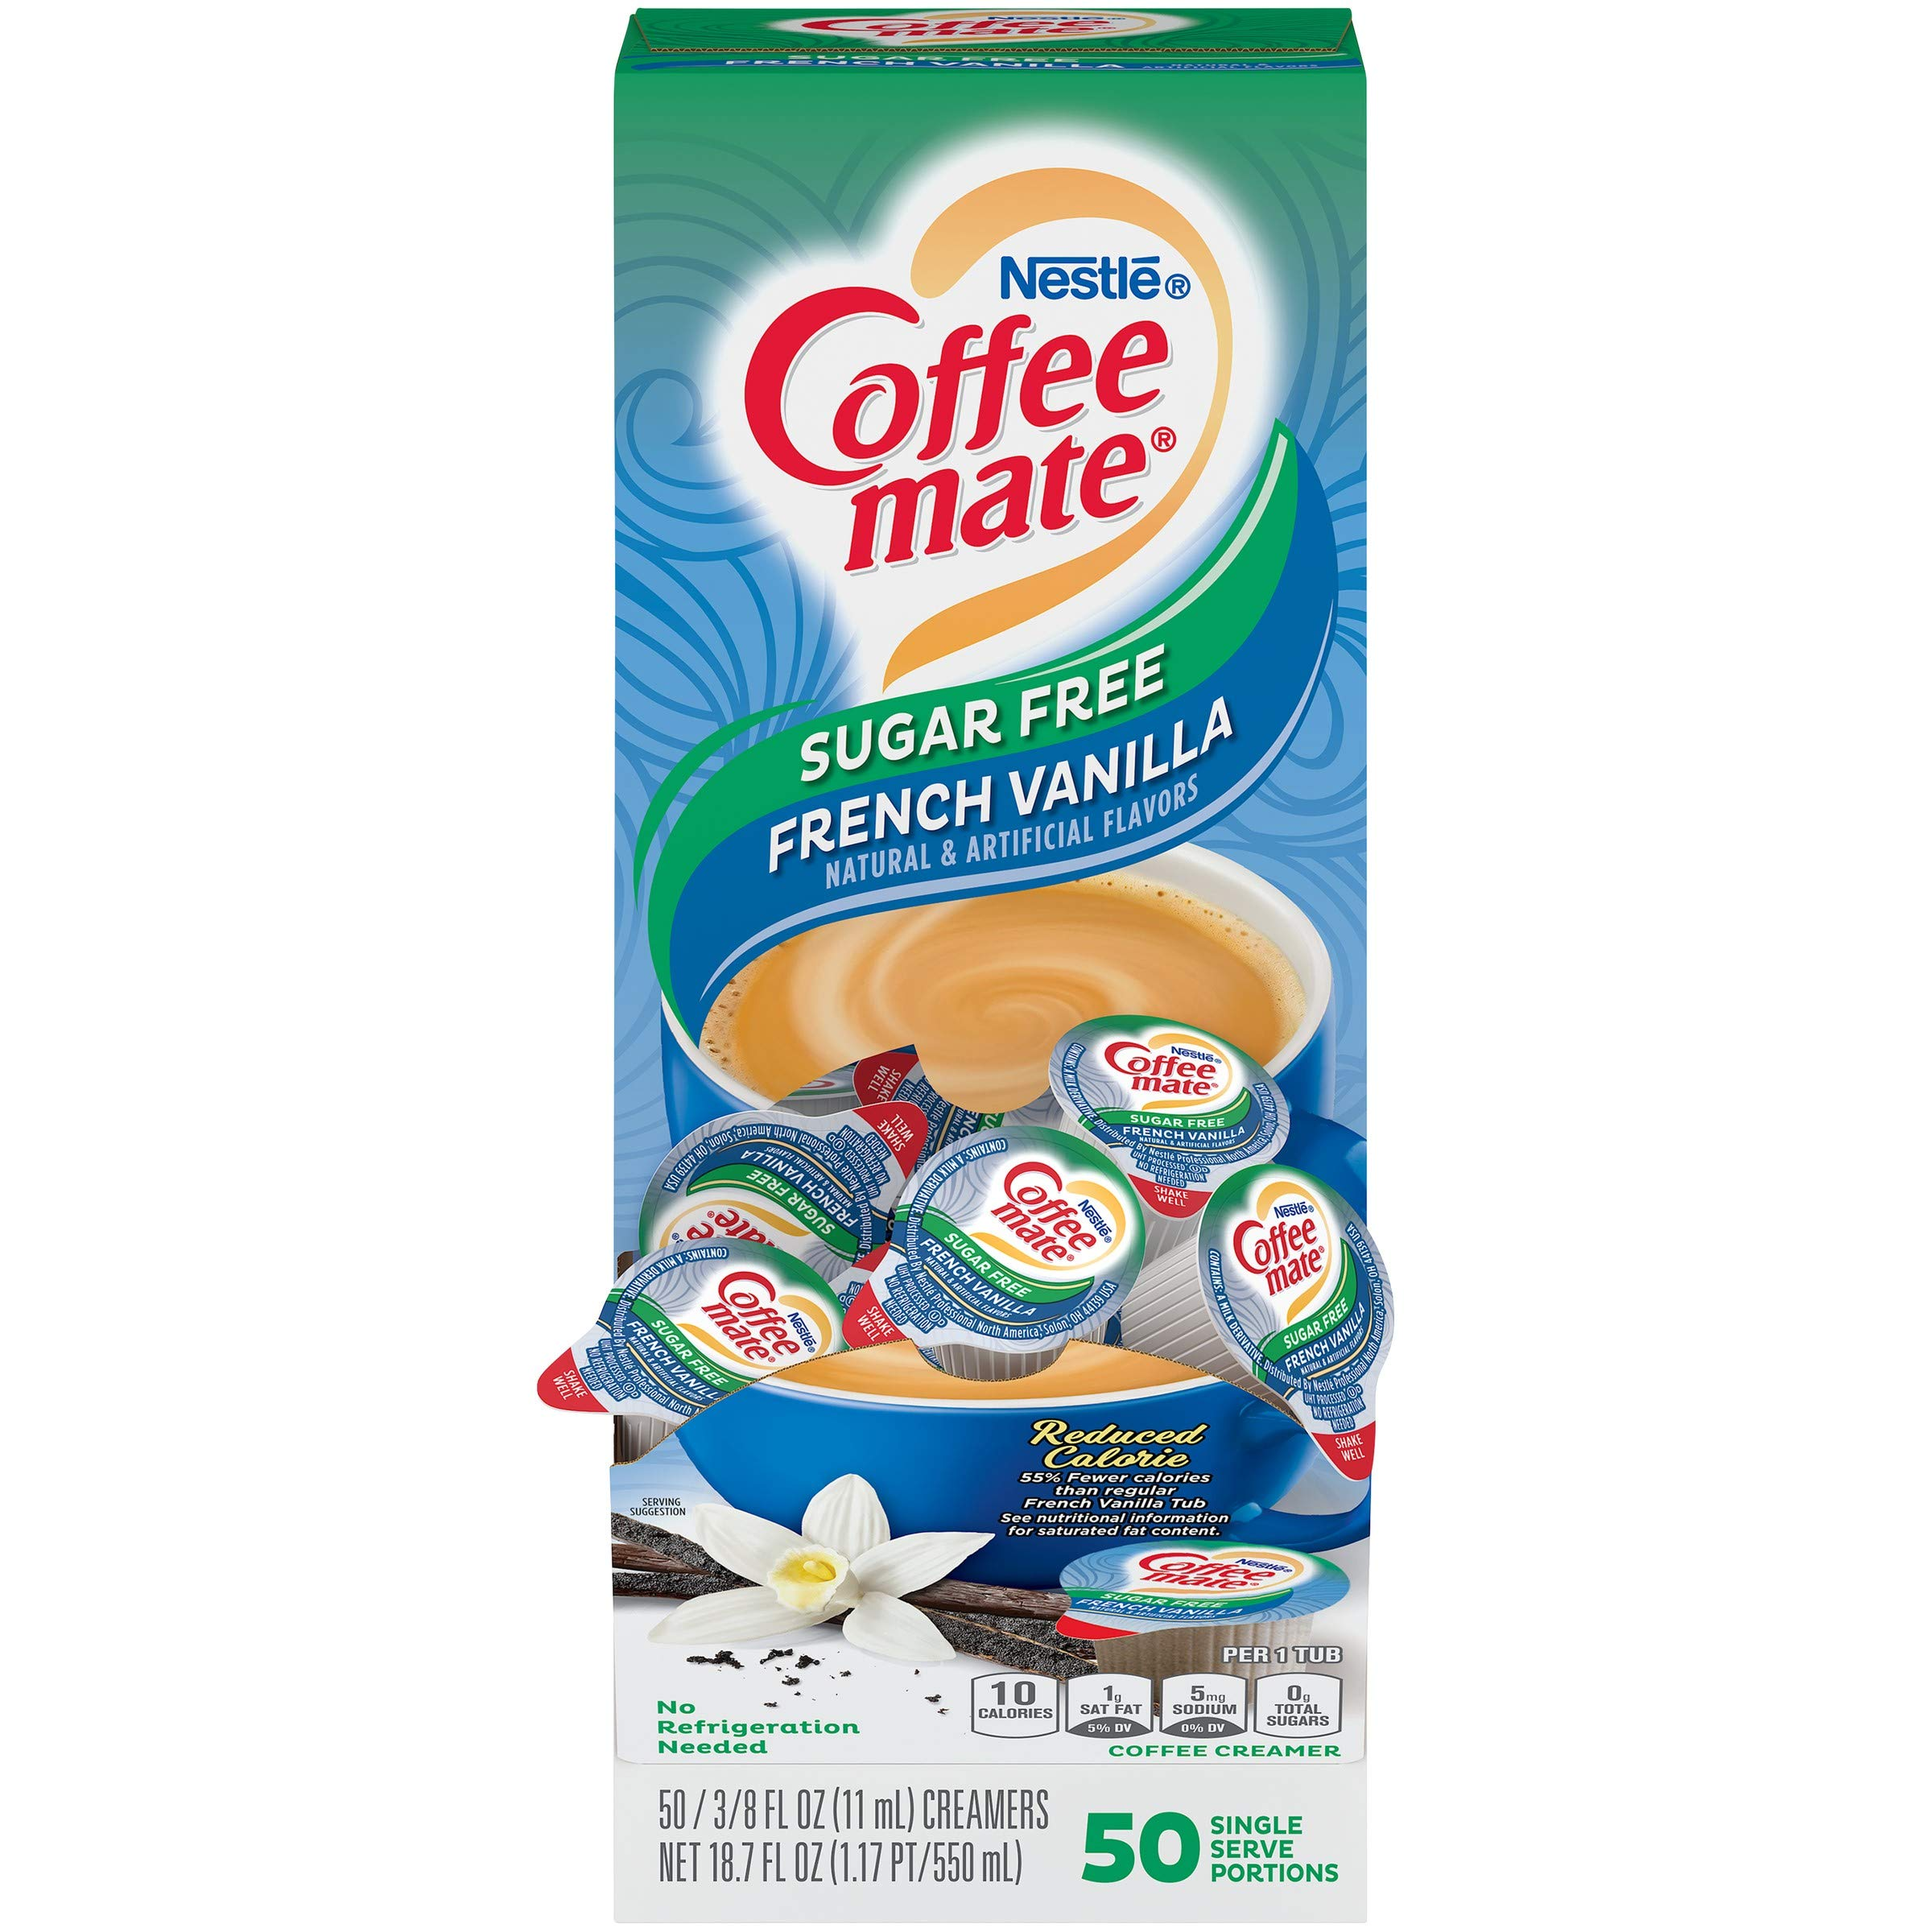 Nestle Coffee mate Coffee Creamer, Sugar Free French Vanilla, Liquid Creamer Singles, Non Dairy, No Refrigeration, Box of 50 Singles